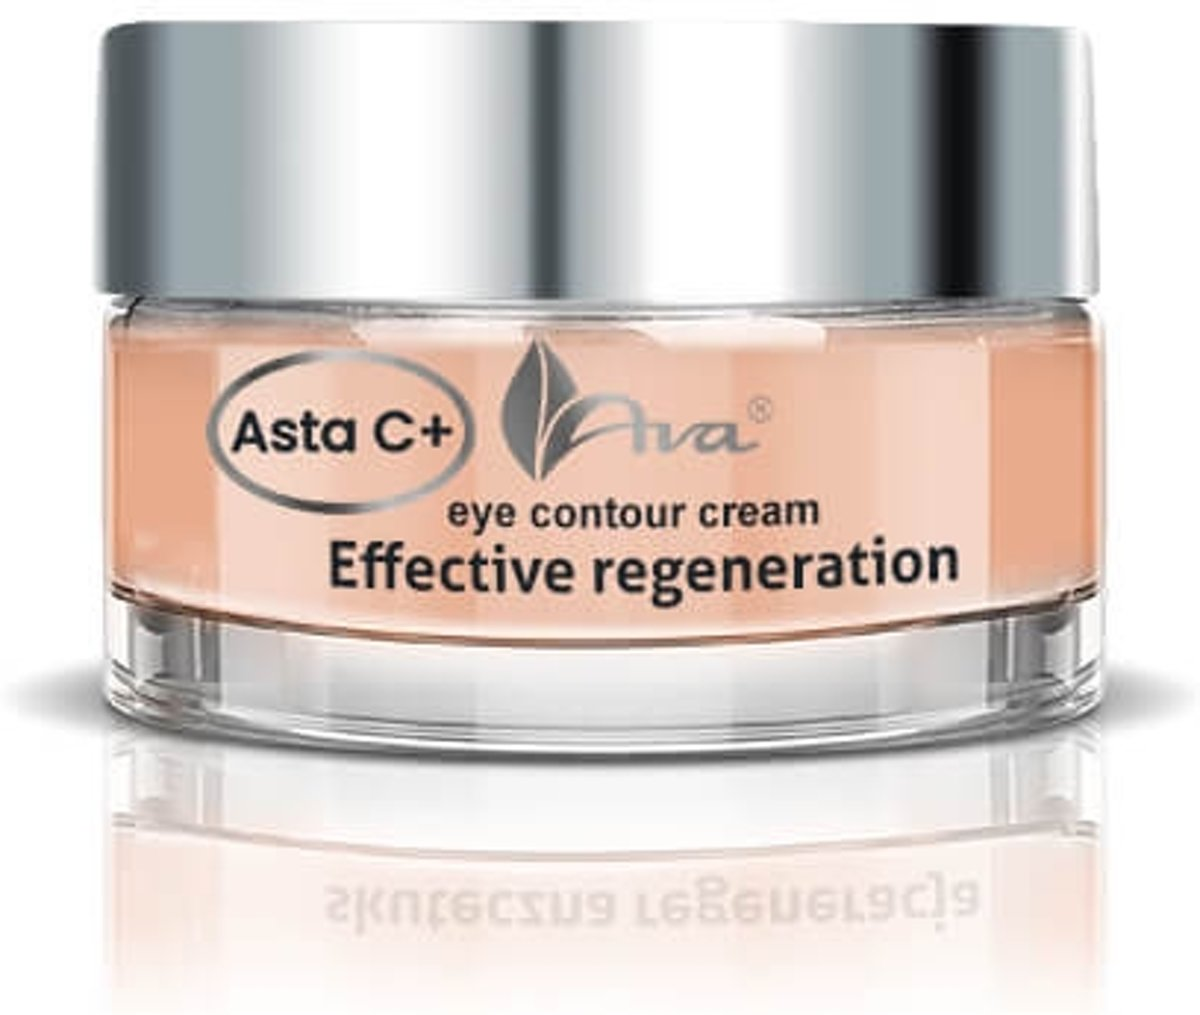 AVA Cosmetics ASTA C+ Effective Regeneration Eye Contour Cream 15ml.